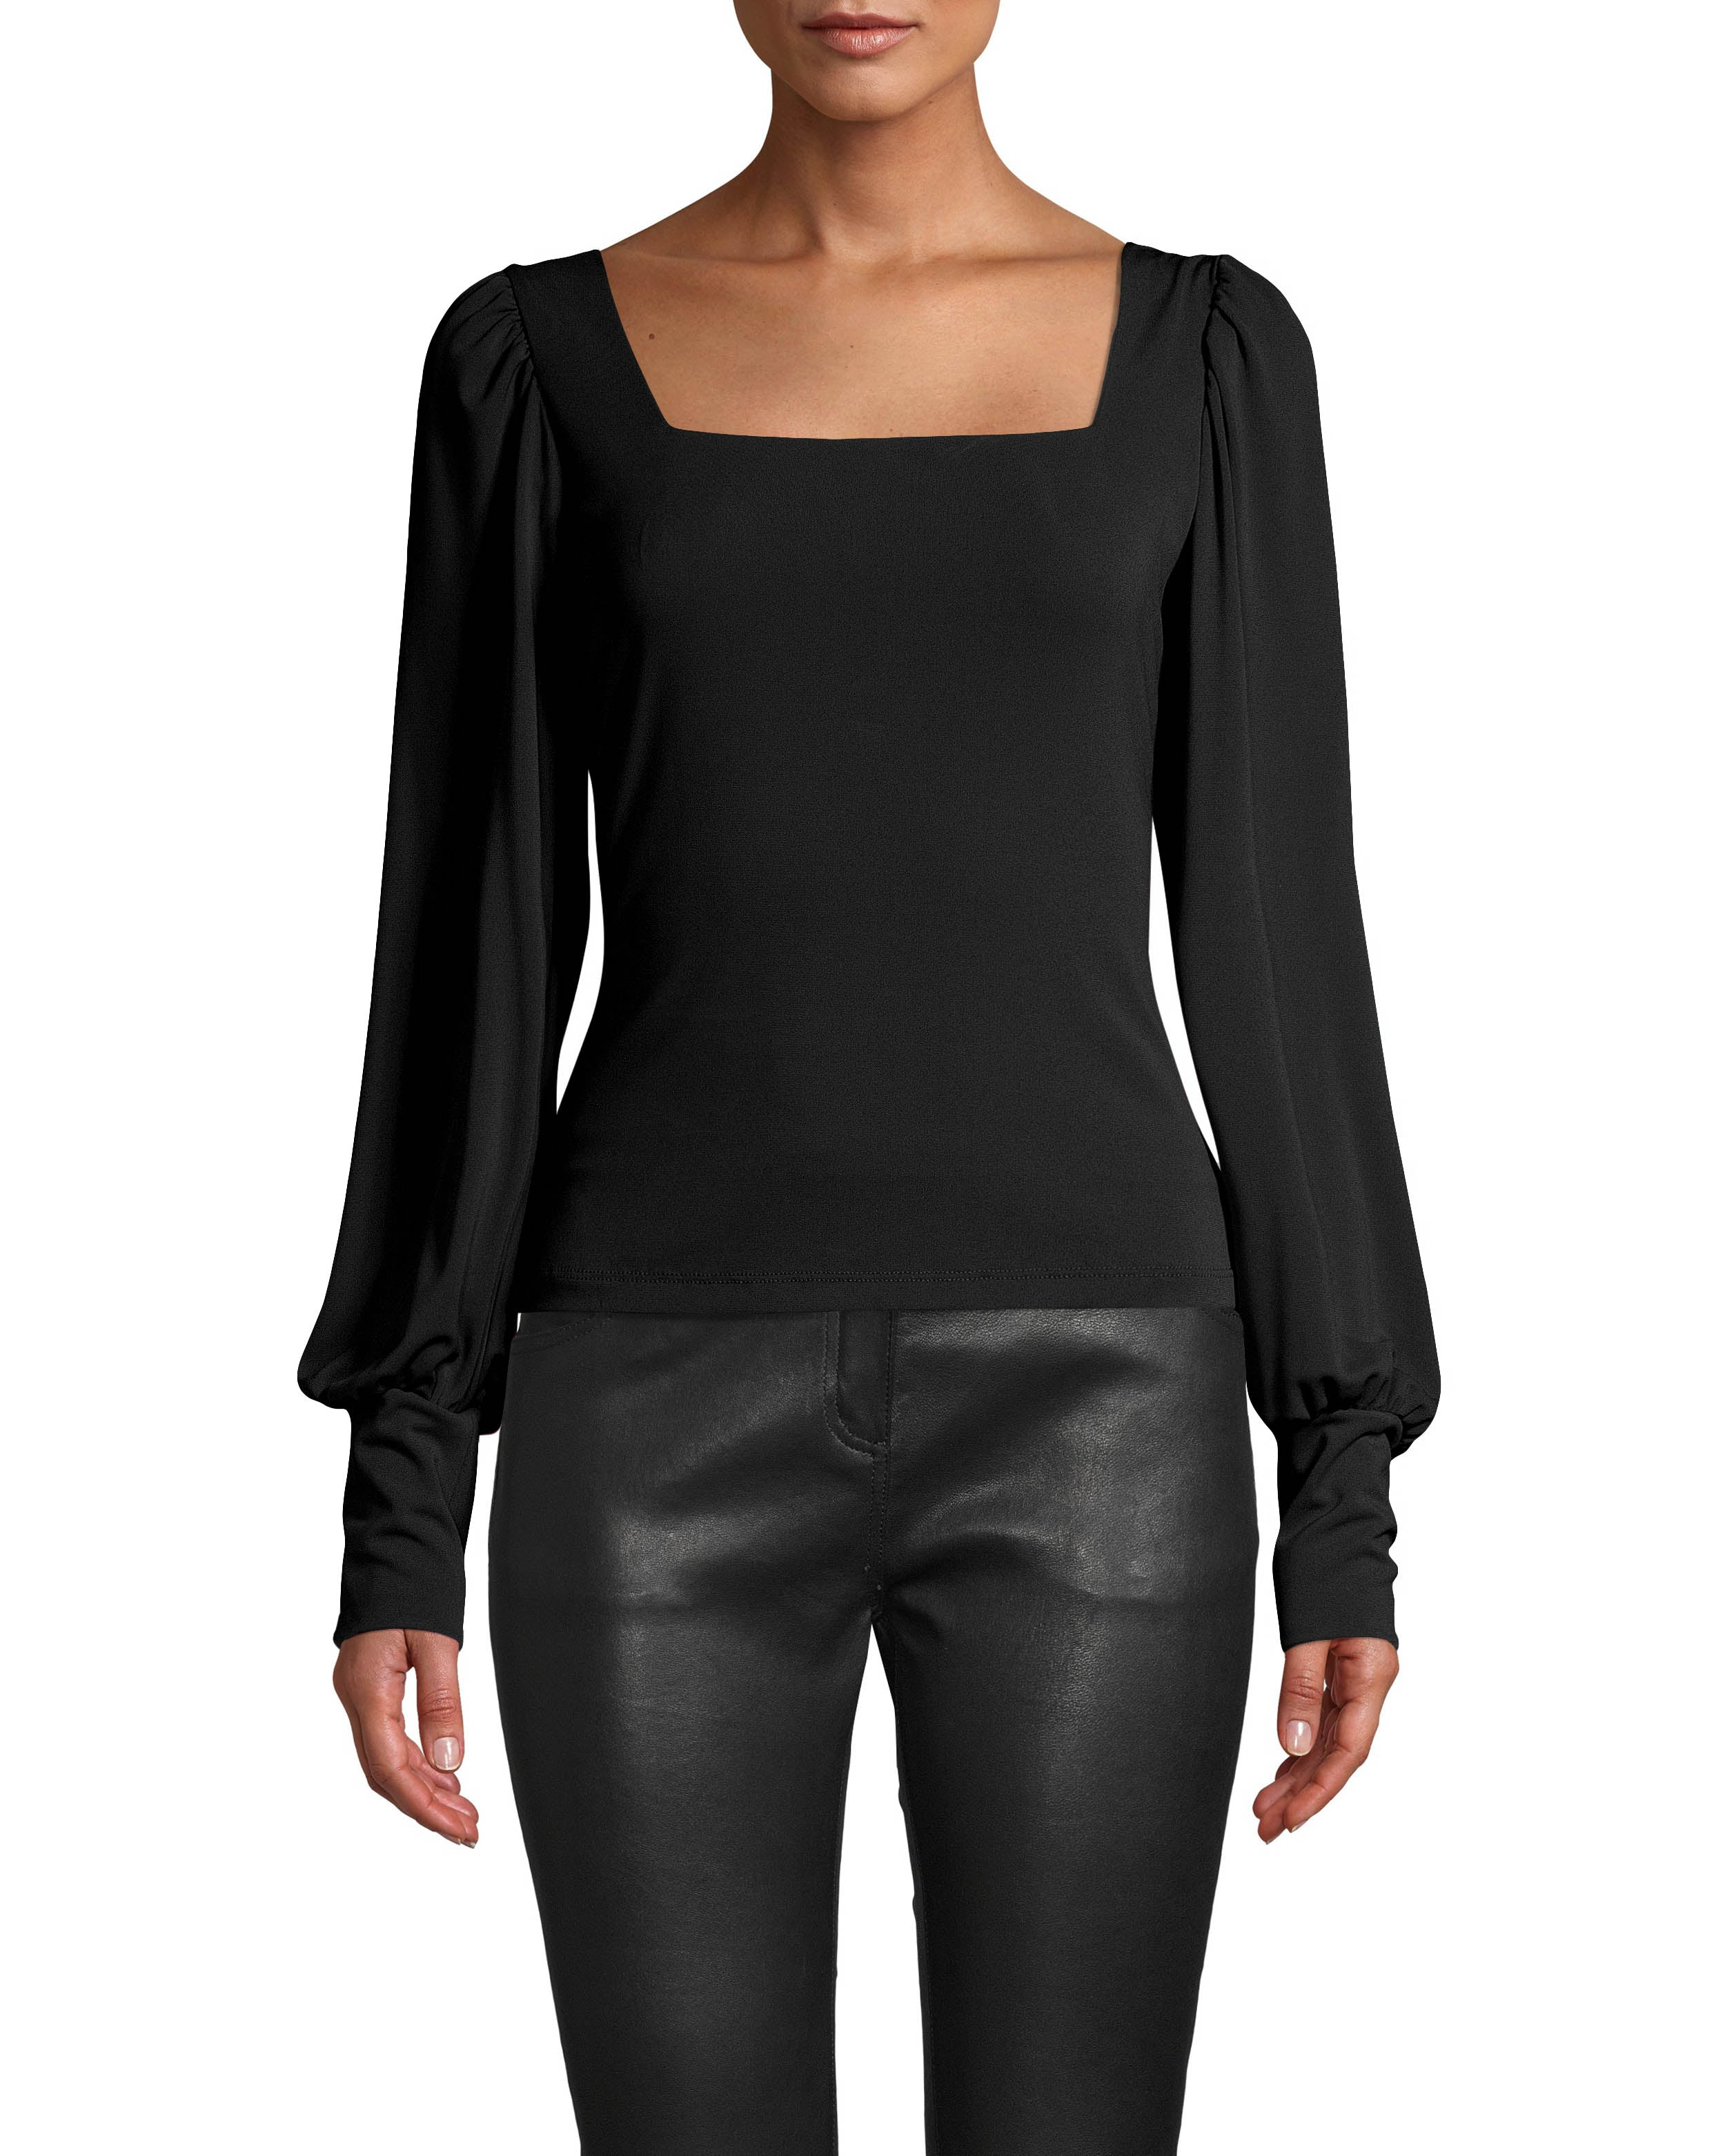 nicole miller stretchy matte jersey square neck blouse in black | polyester/spandex/acetate | size petite